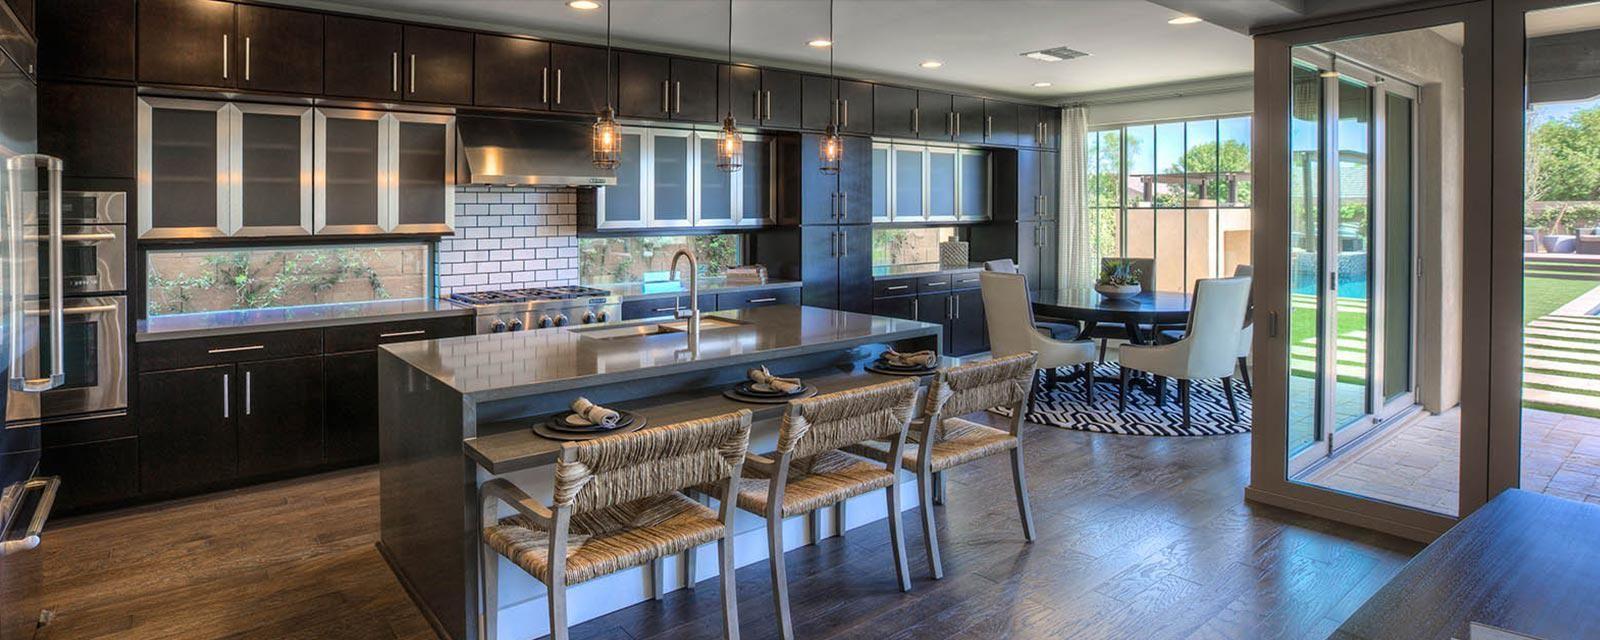 Sold Out Jacaranda Place In Chandler Az By Ashton Woods Homes